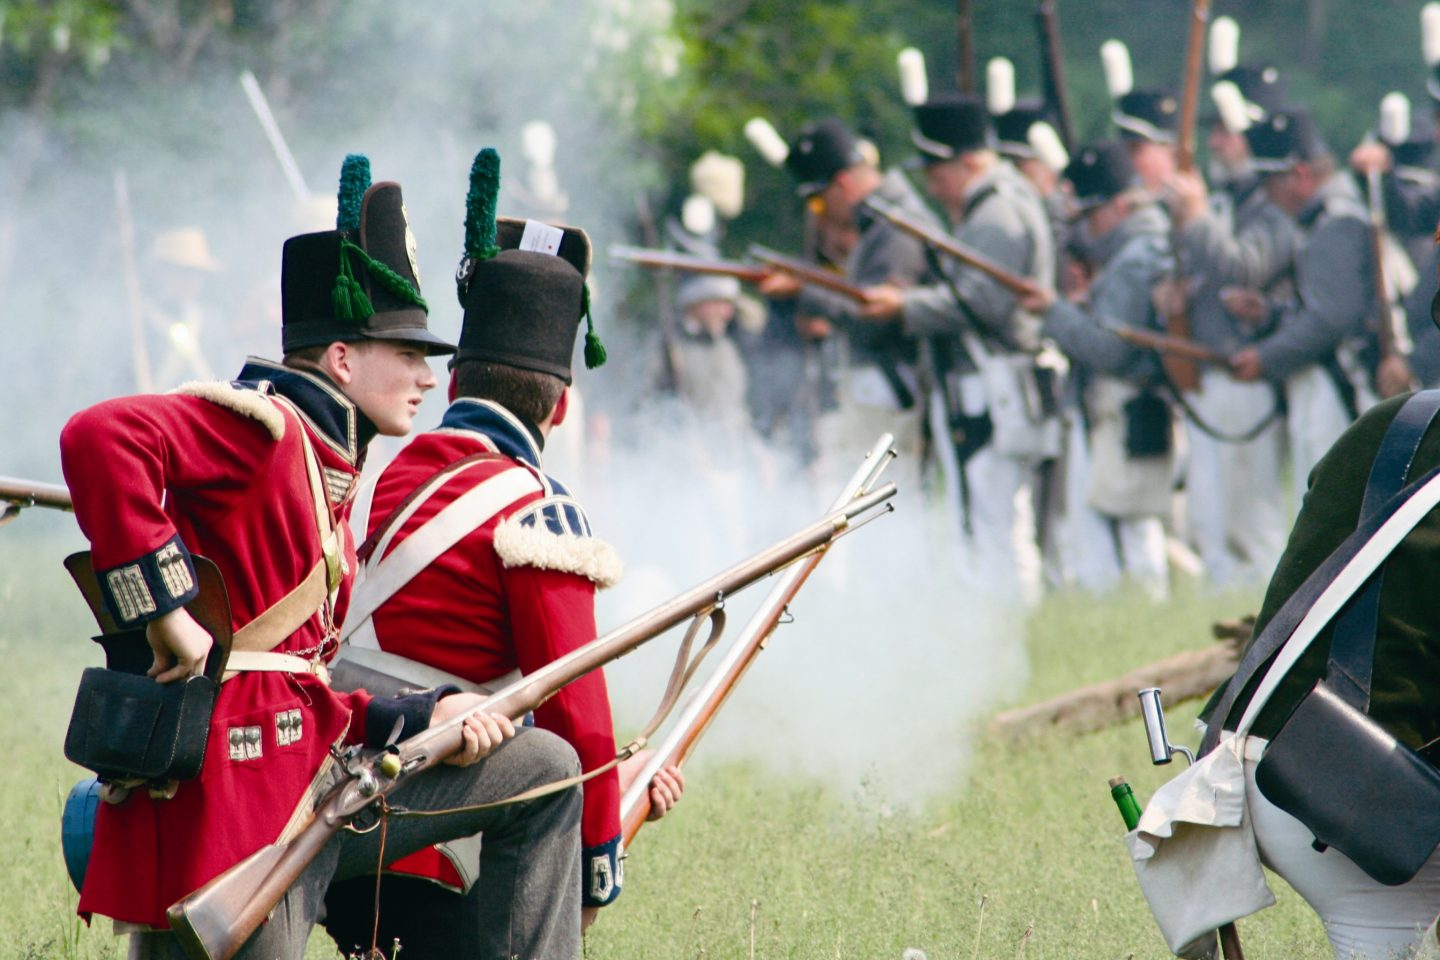 2020 Re-enactment of the Battle of Stoney Creek